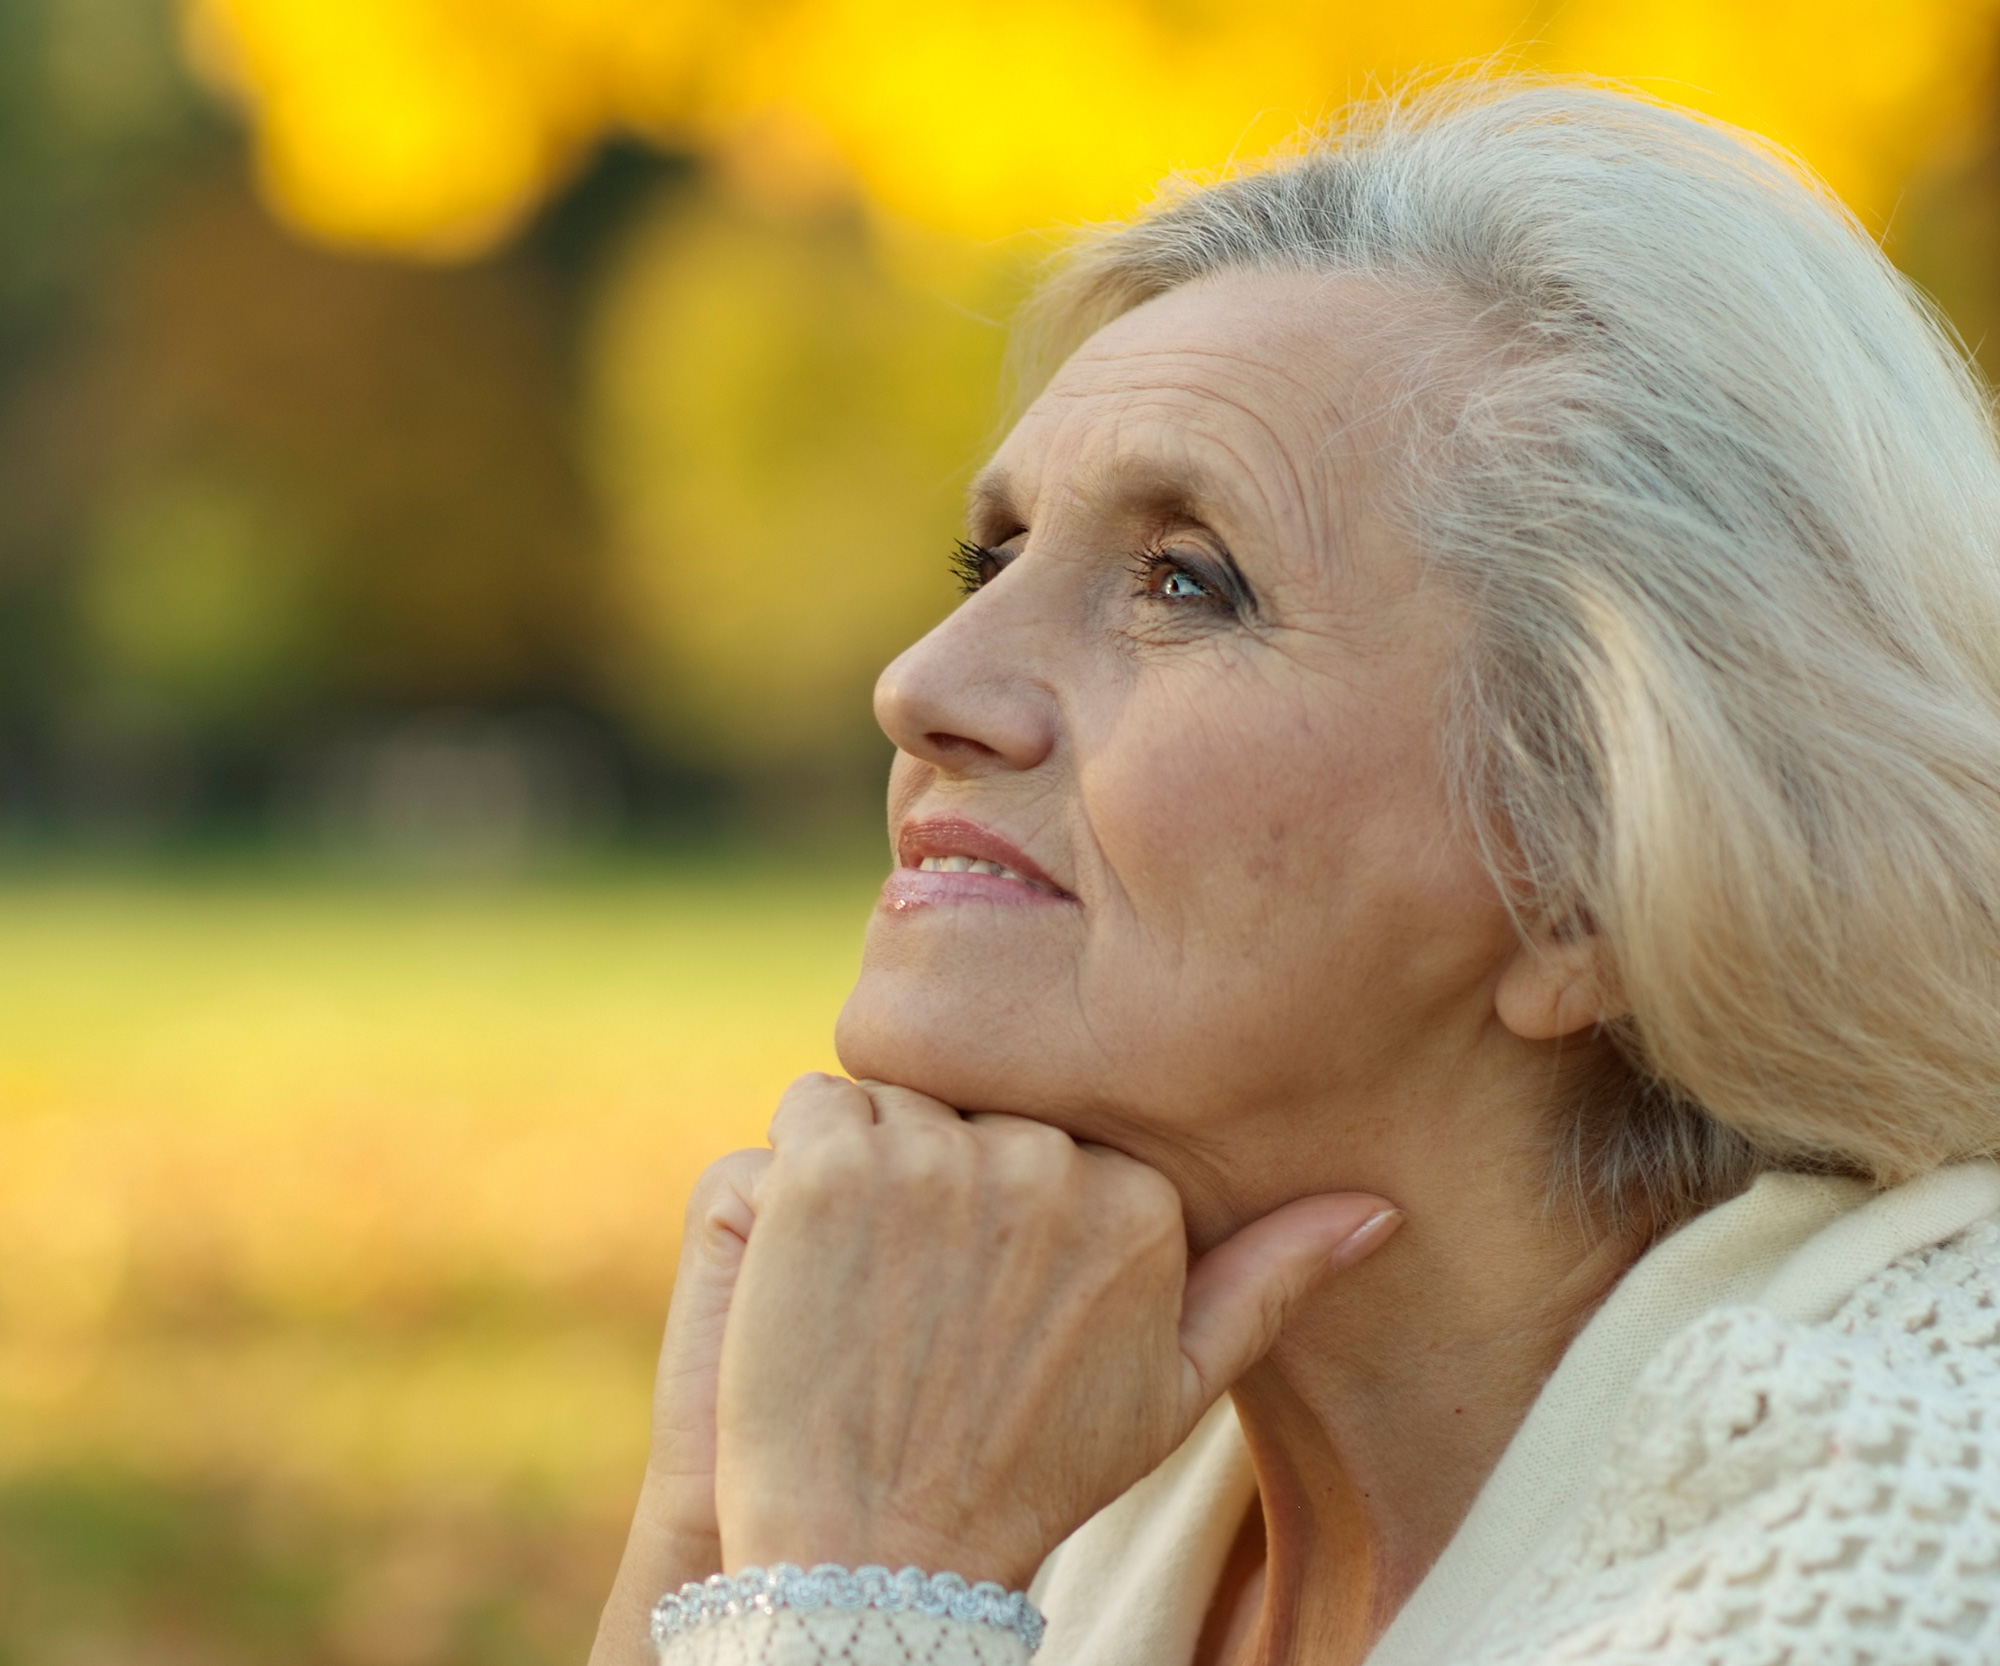 A retired woman thinking about whether she is ready to downsize